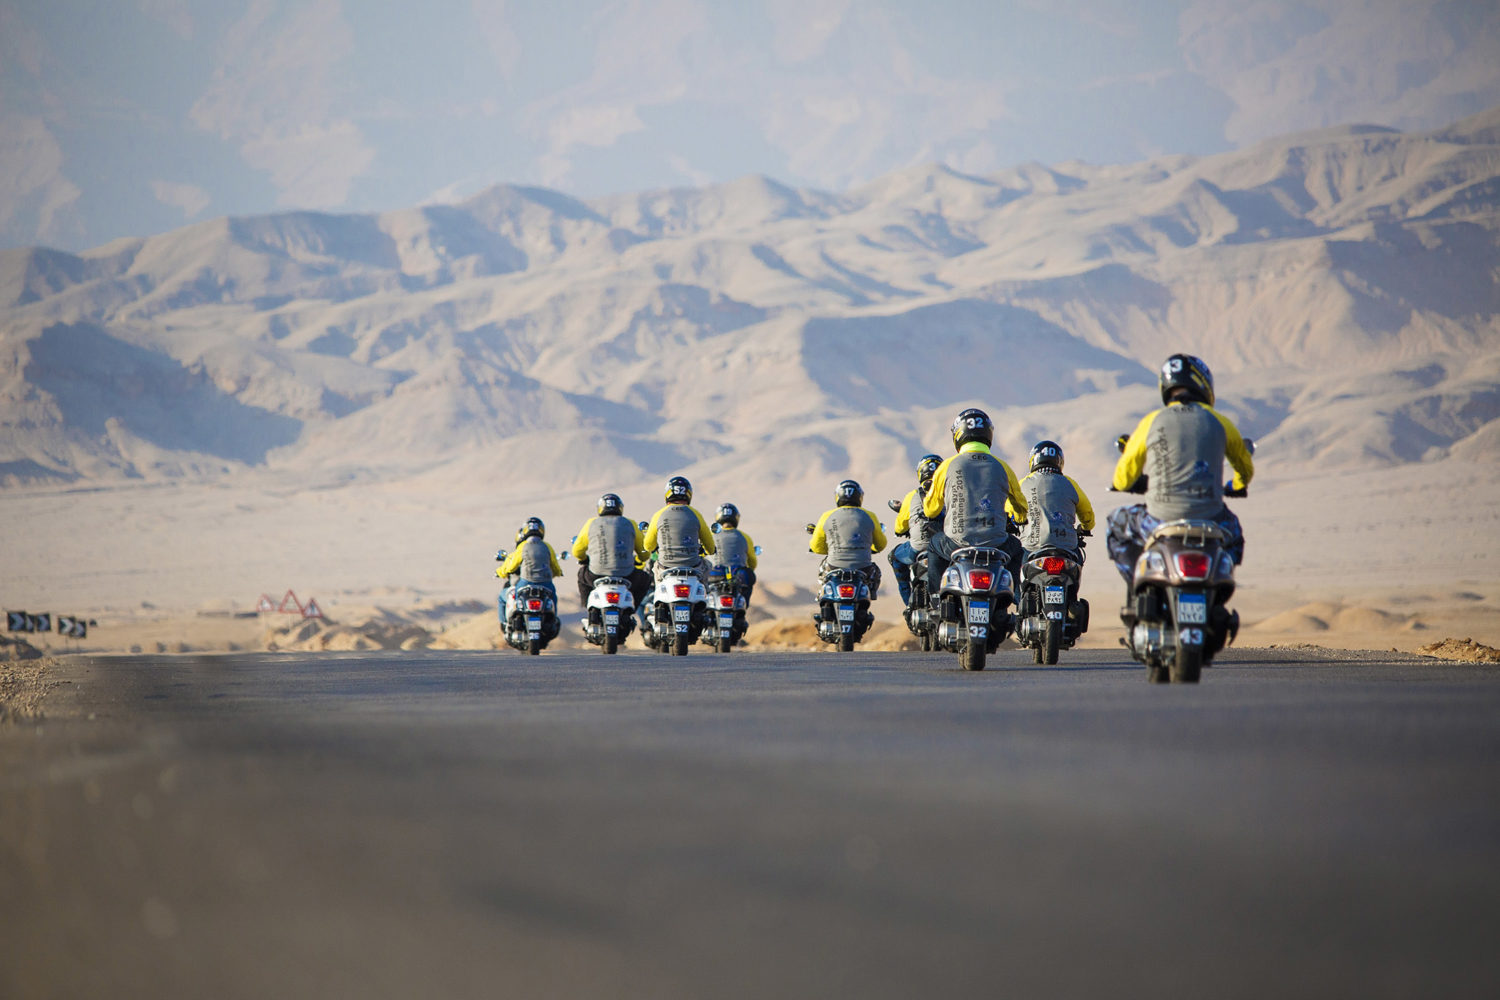 The Cross Egypt Challenge: A Biker's Desert Dream